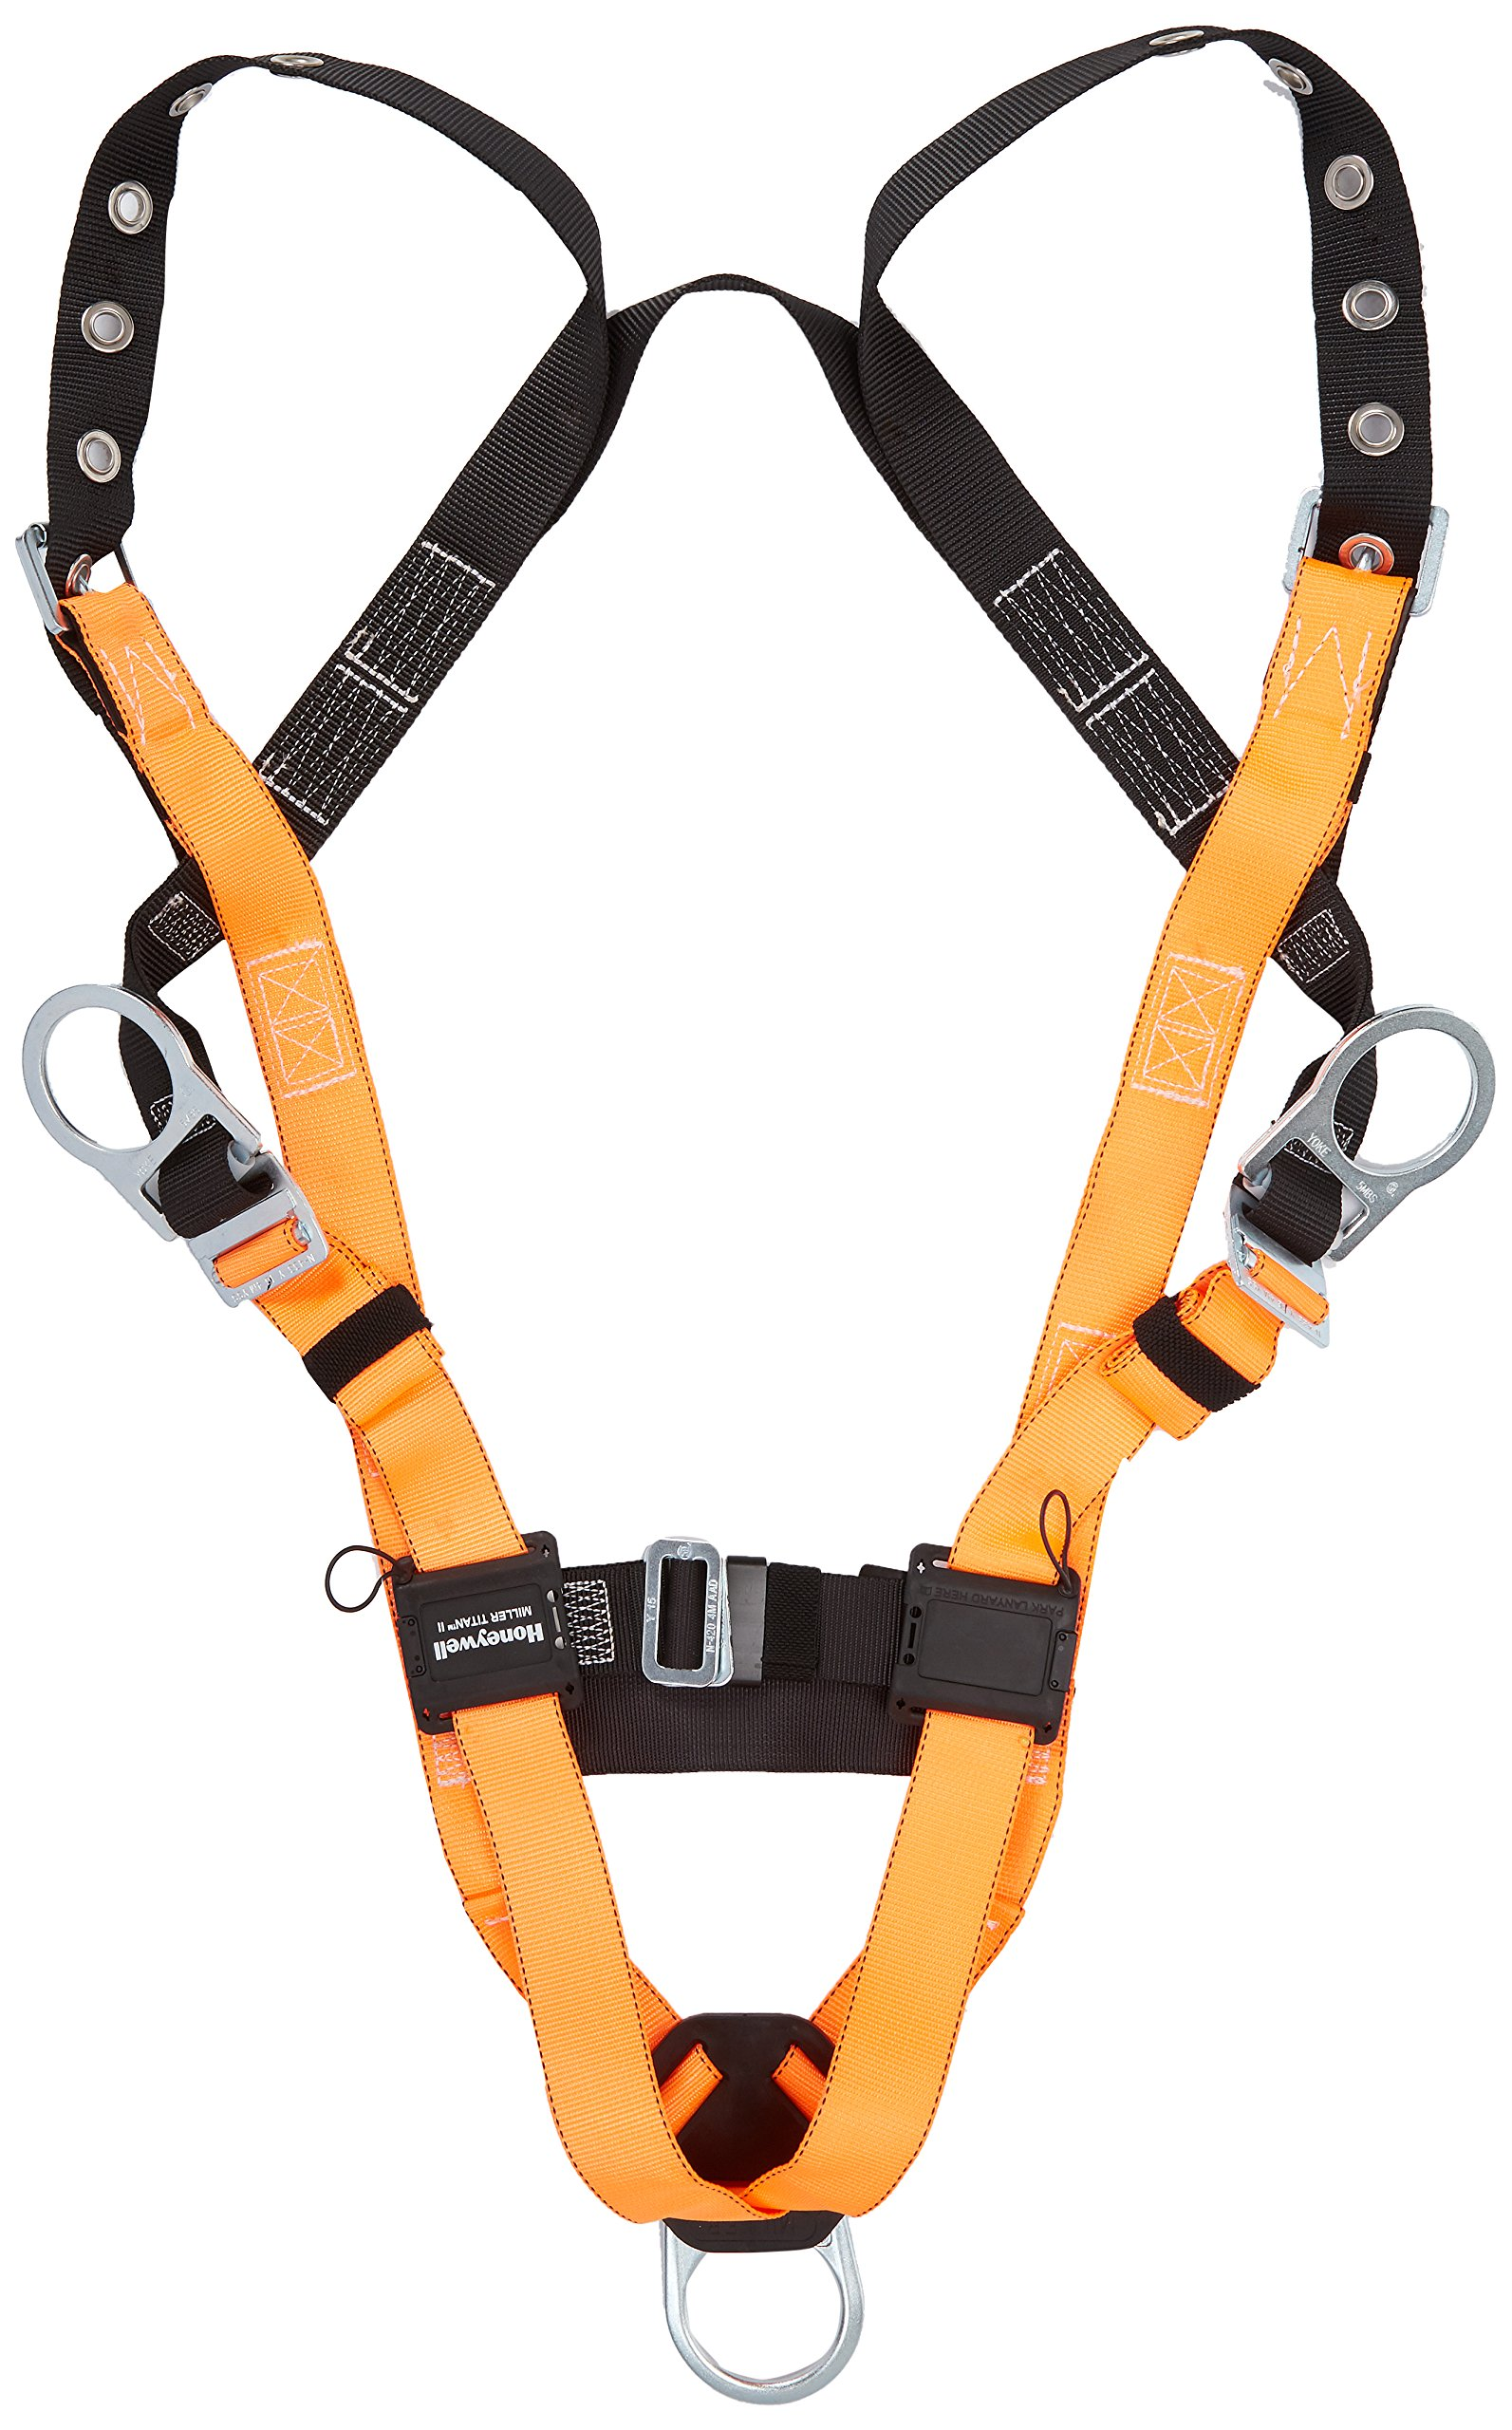 Miller Titan by Honeywell T4507/UAK Non-Stretch Harness with Side D-Ring, Universal